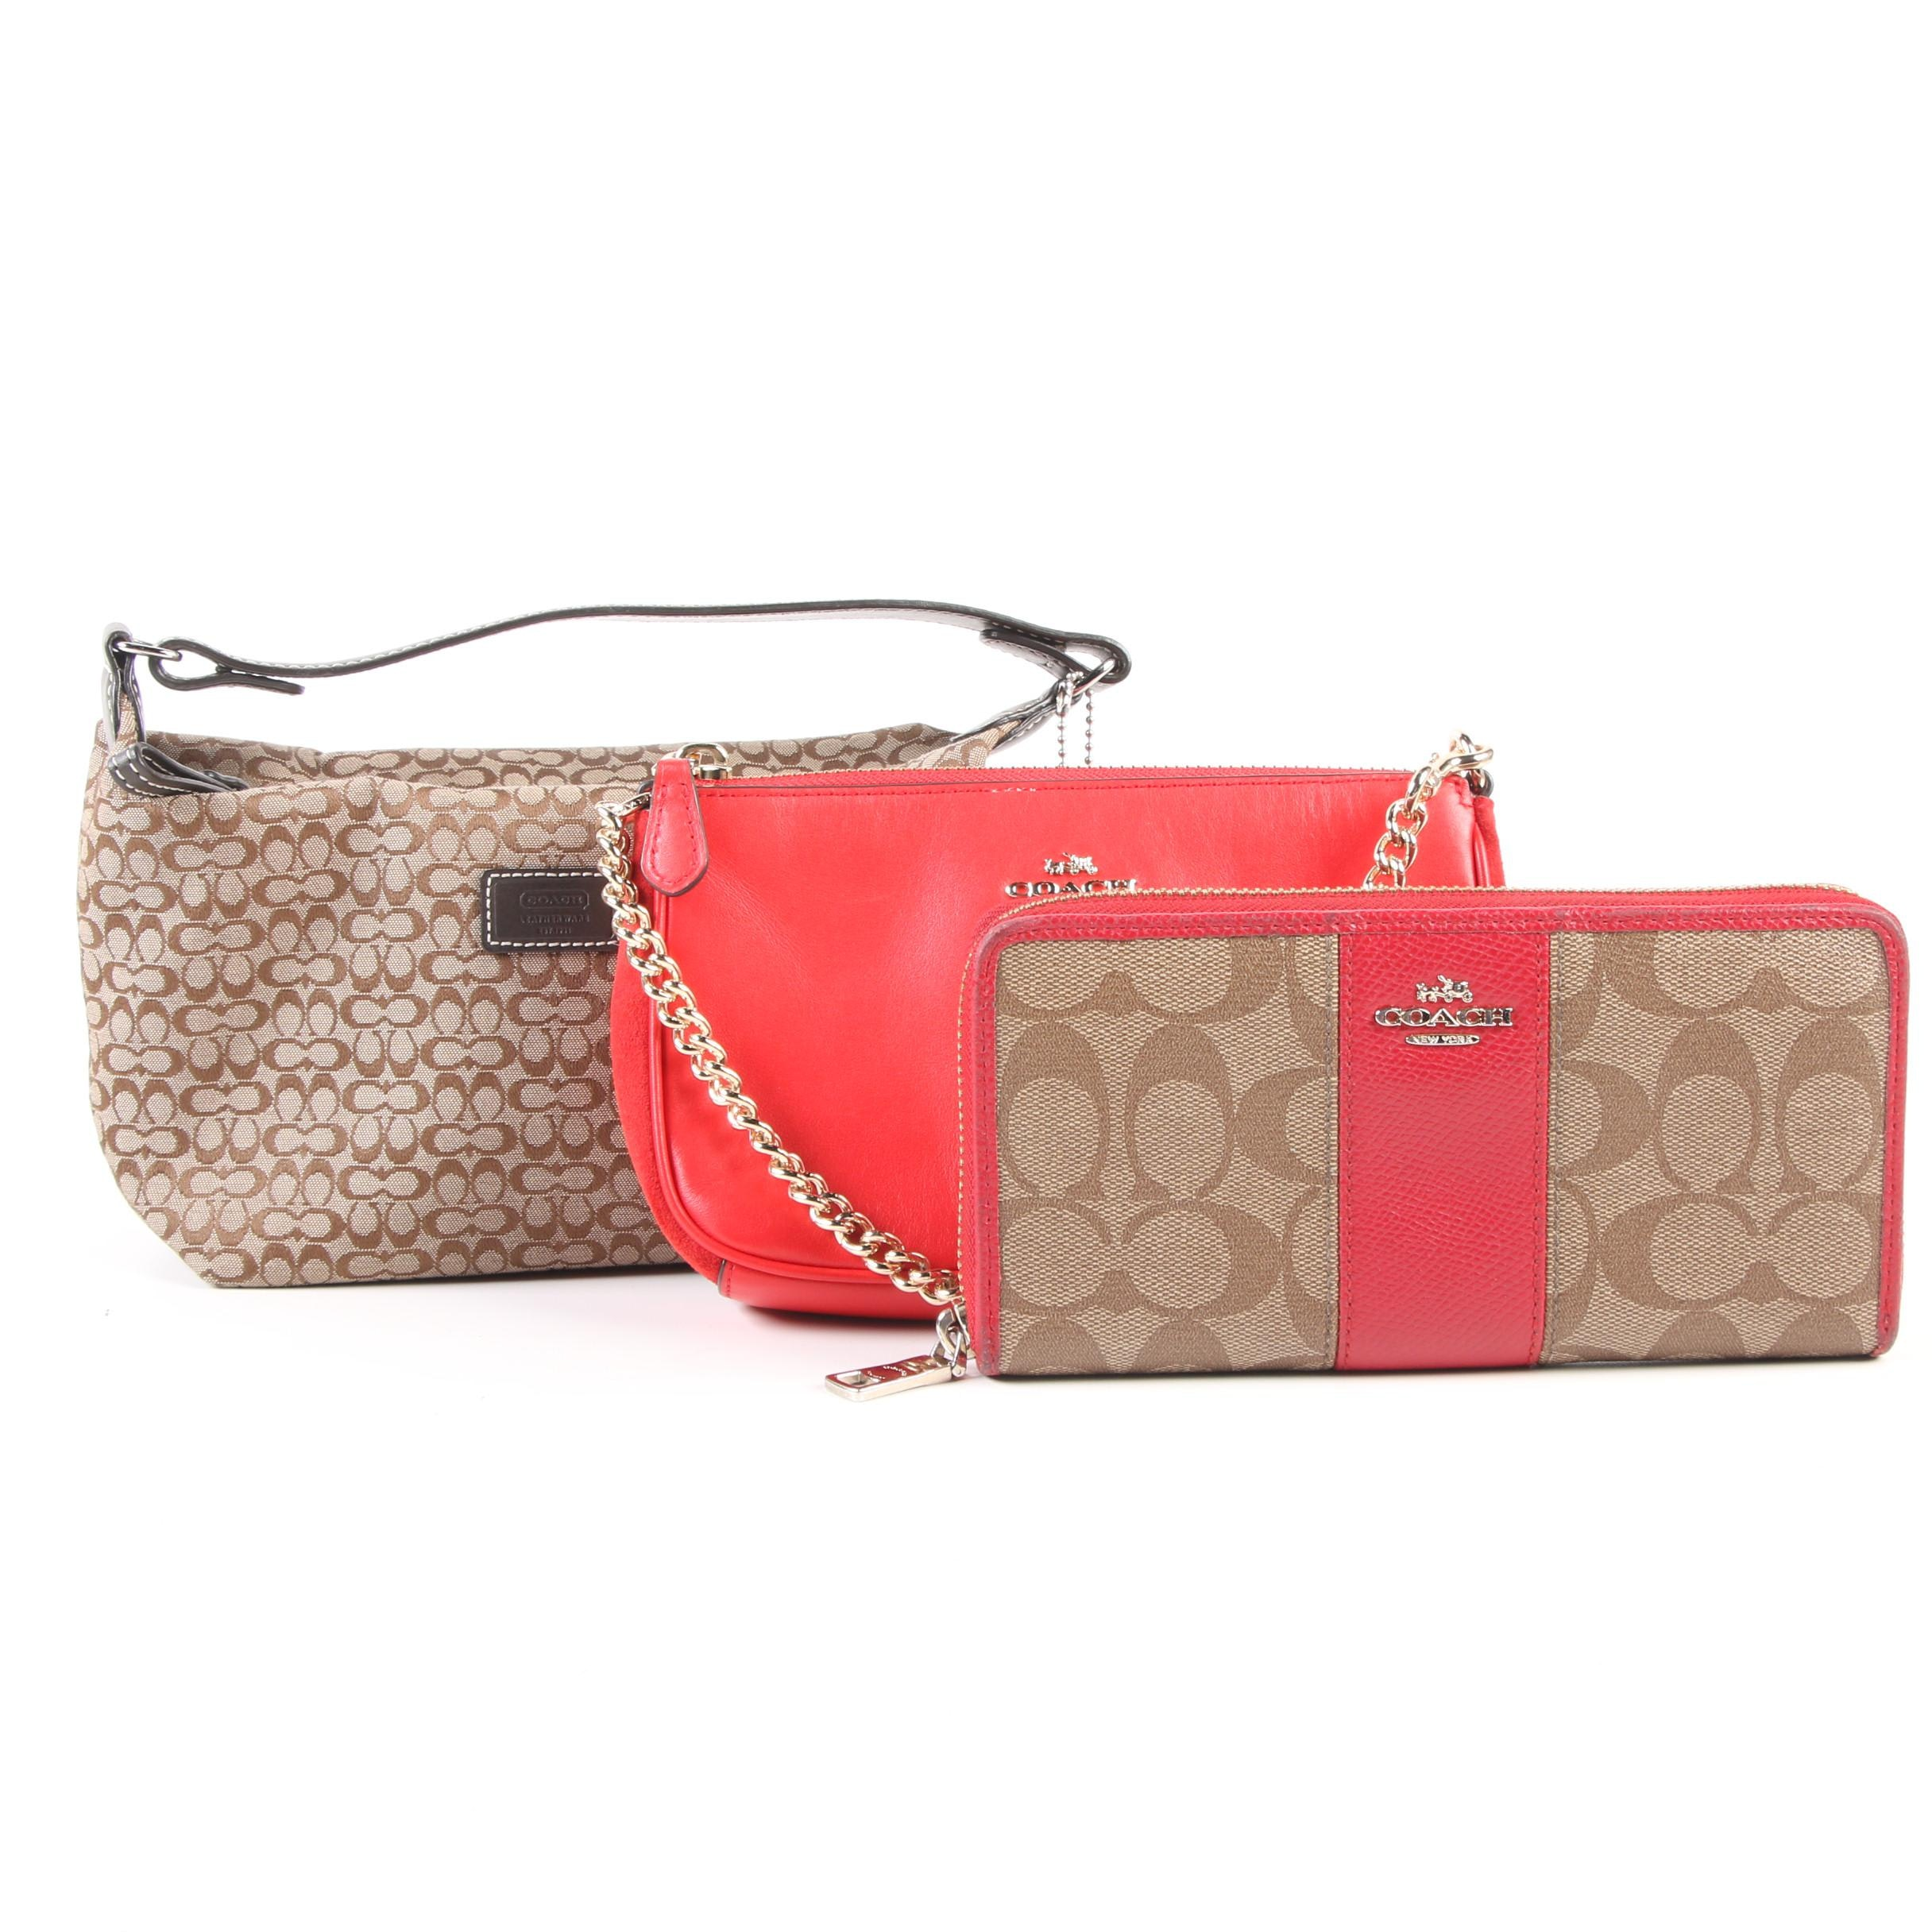 Coach Selena Gomez Limited Edition Wristlet with Long Wallet and Pouchette